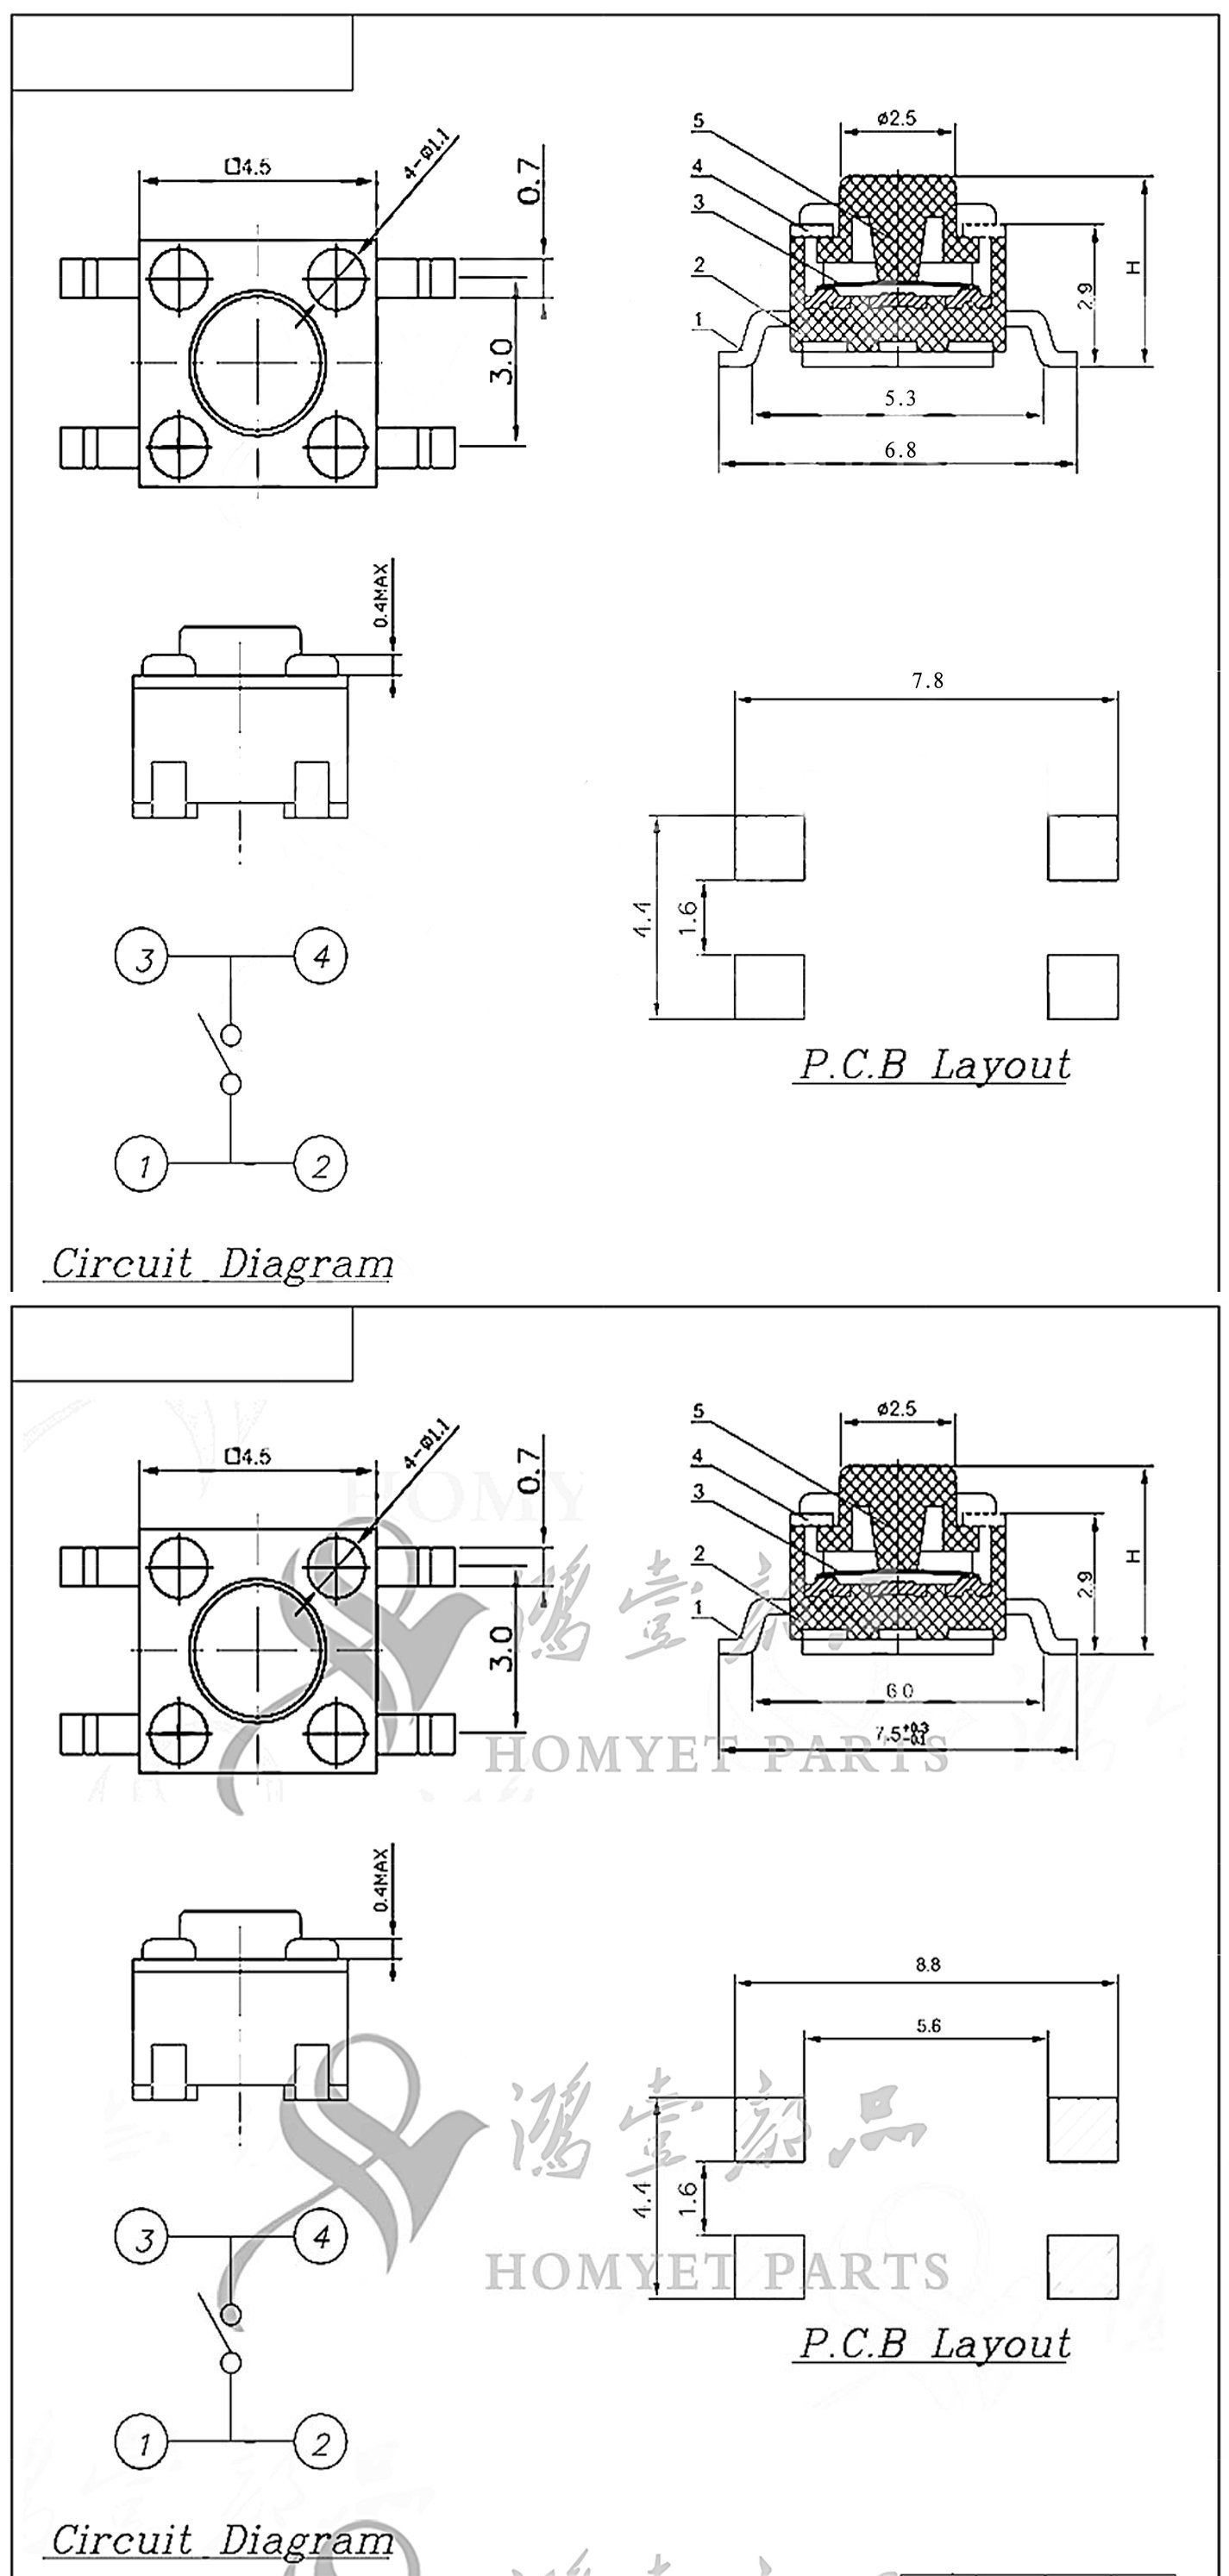 4 5*4 5mm 4pin smt tactile switch smd tact switch (hy 1109s) china  product detail show